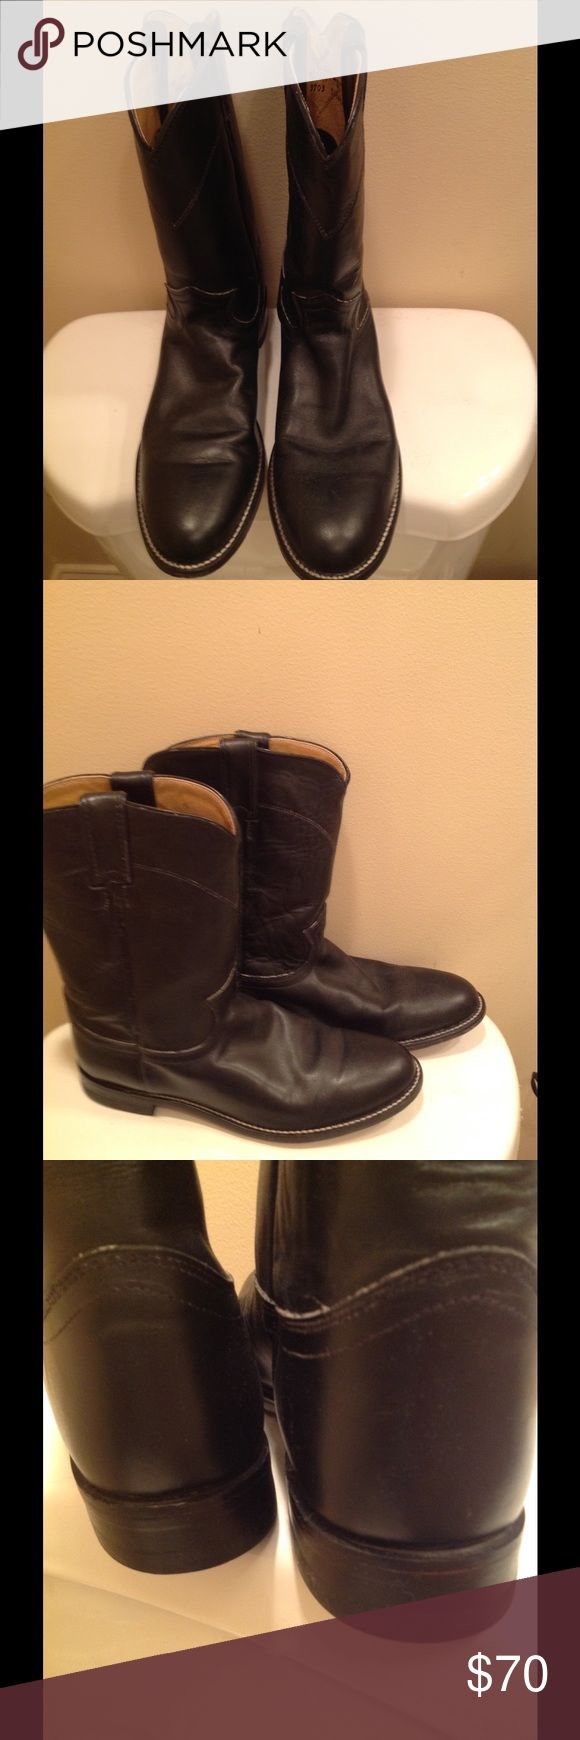 JUSTIN ROPER BOOTS These boots have sat Idle in my closet for about 4 years. They have been very gently worn and are leather uppers and sole. There are many good years of use in the nice boots.  The size is 9 1/2B. Justin Shoes